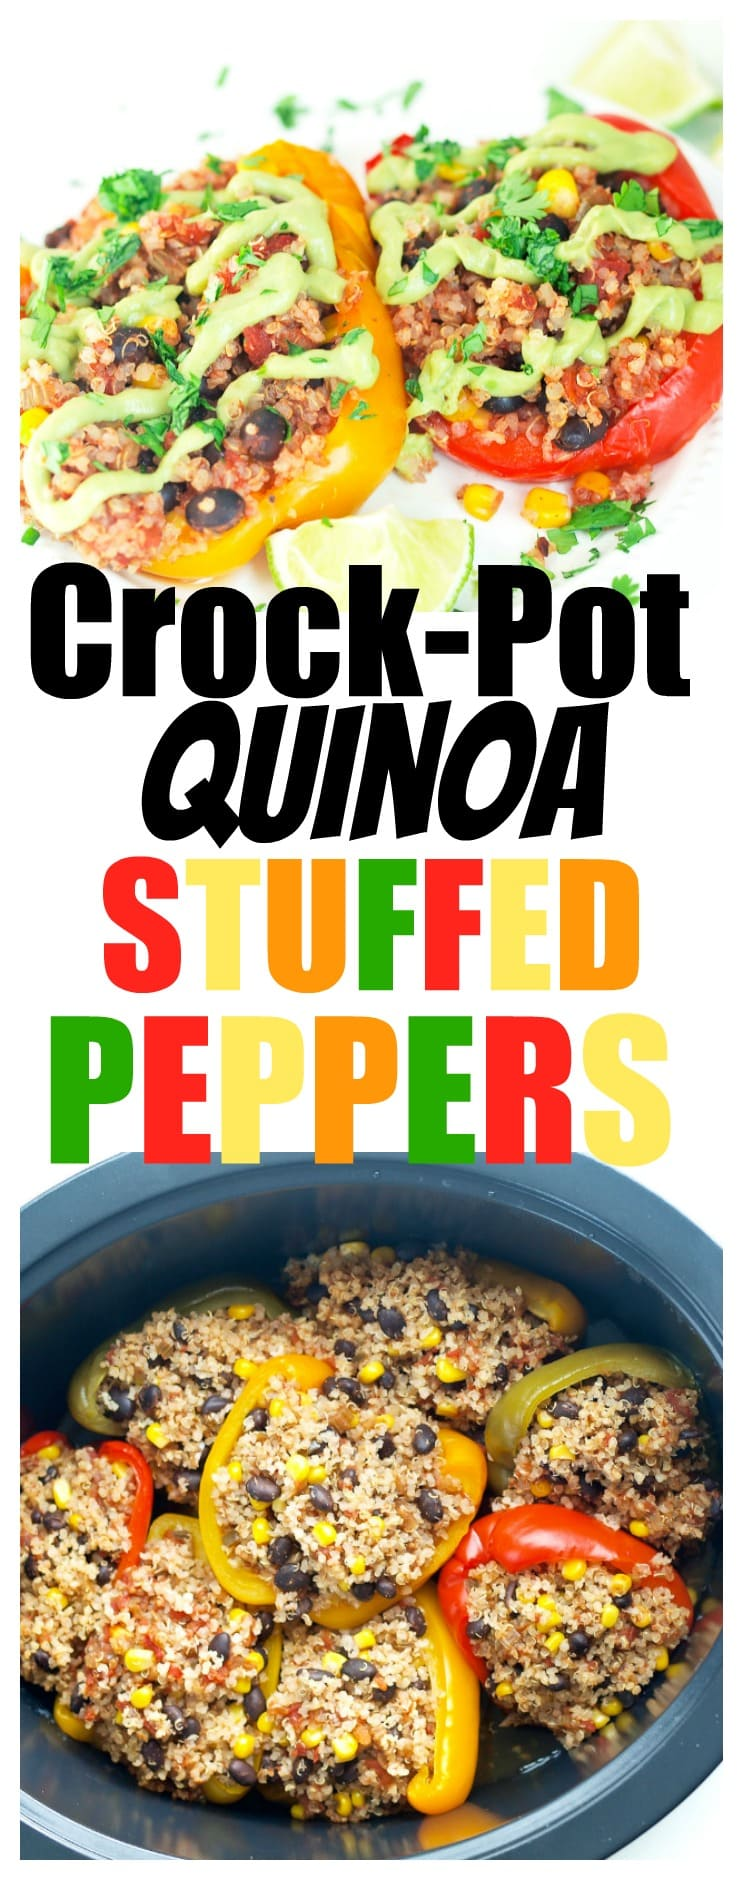 vegan | crockpot recipe | dinner | easy | healthy | quinoa | vegetarian